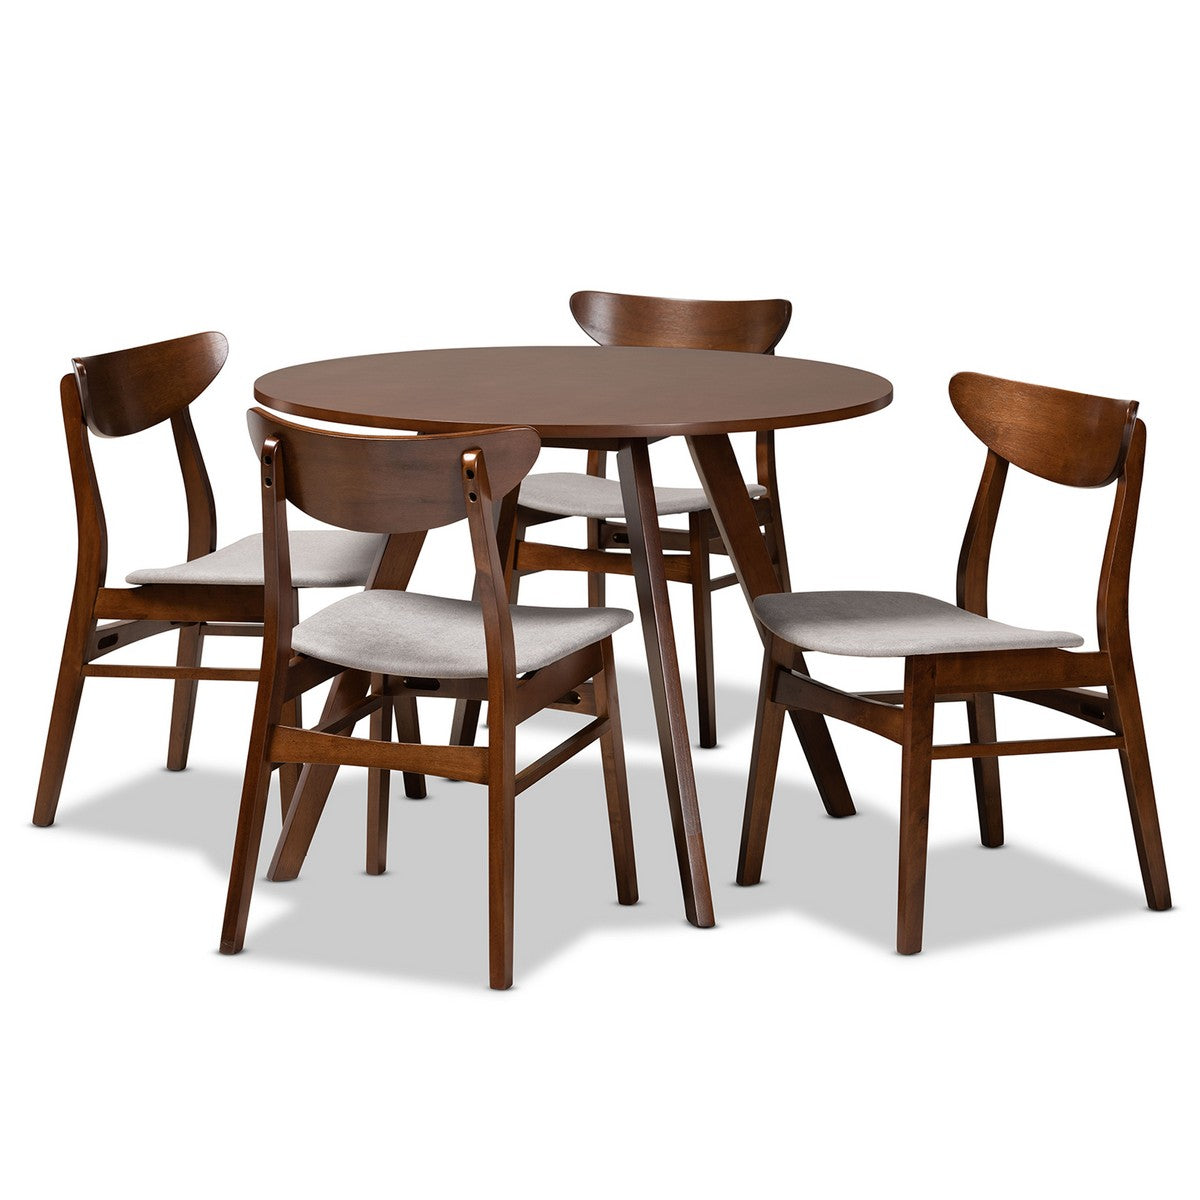 Baxton Studio Philip Mid-Century Modern Transitional Light Grey Fabric Upholstered and Walnut Brown Finished Wood 5-Piece Dining Set Baxton Studio-Dining Sets-Minimal And Modern - 1